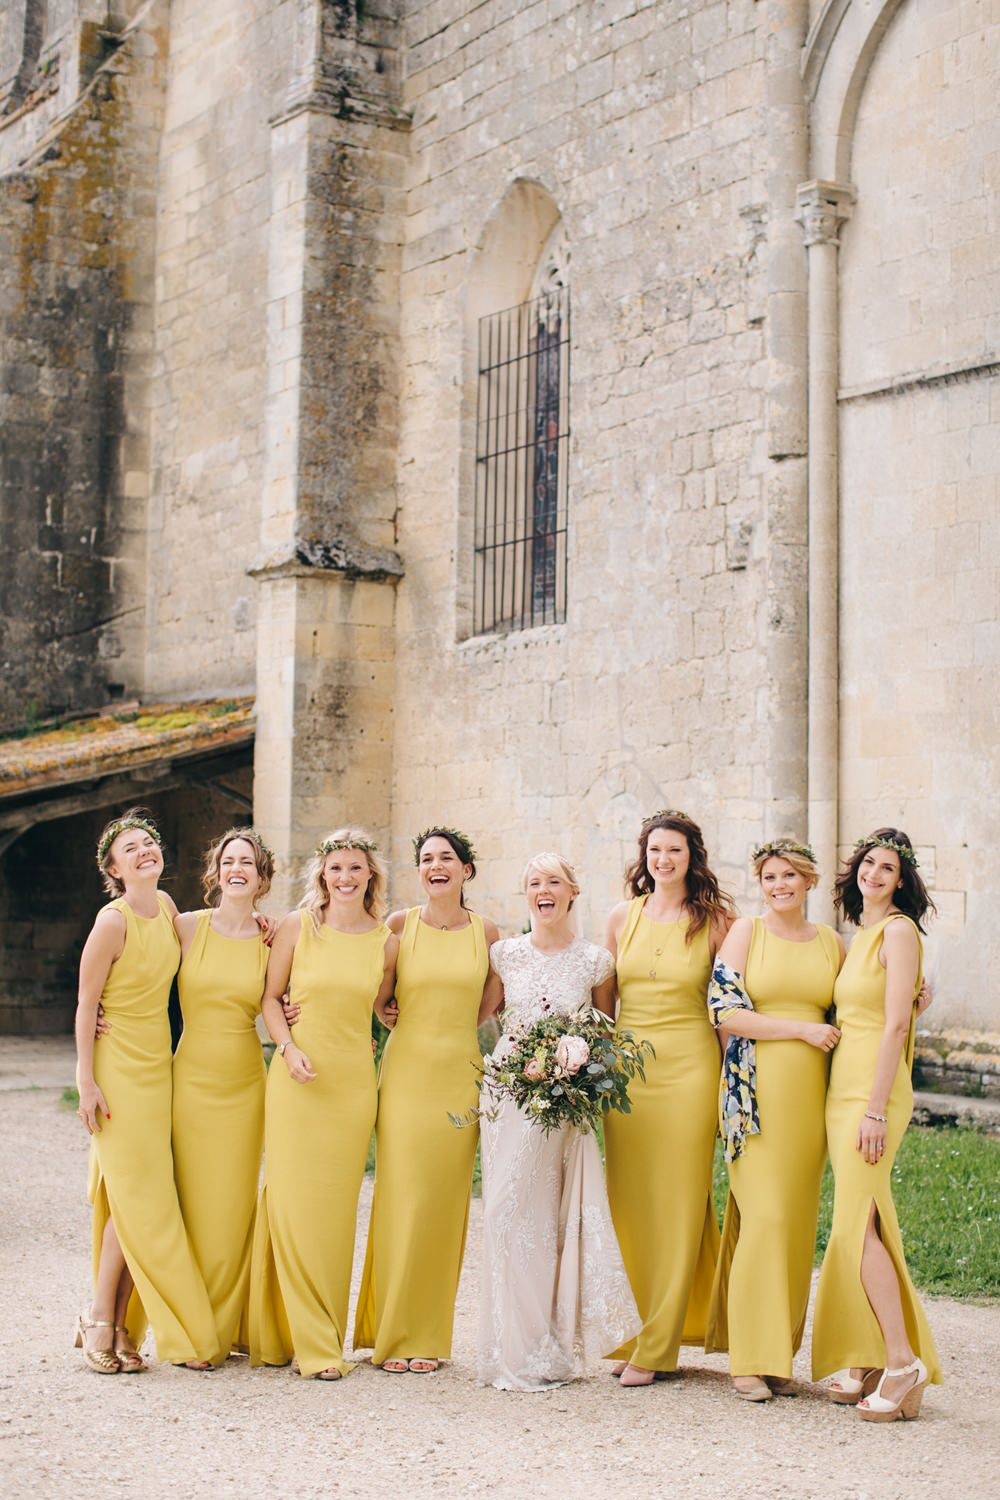 Hermione de paula wedding dress for a destination wedding at hermione de paula wedding dress for a destination wedding at chateau rigaud france whistles dressesyellow bridesmaid ombrellifo Images